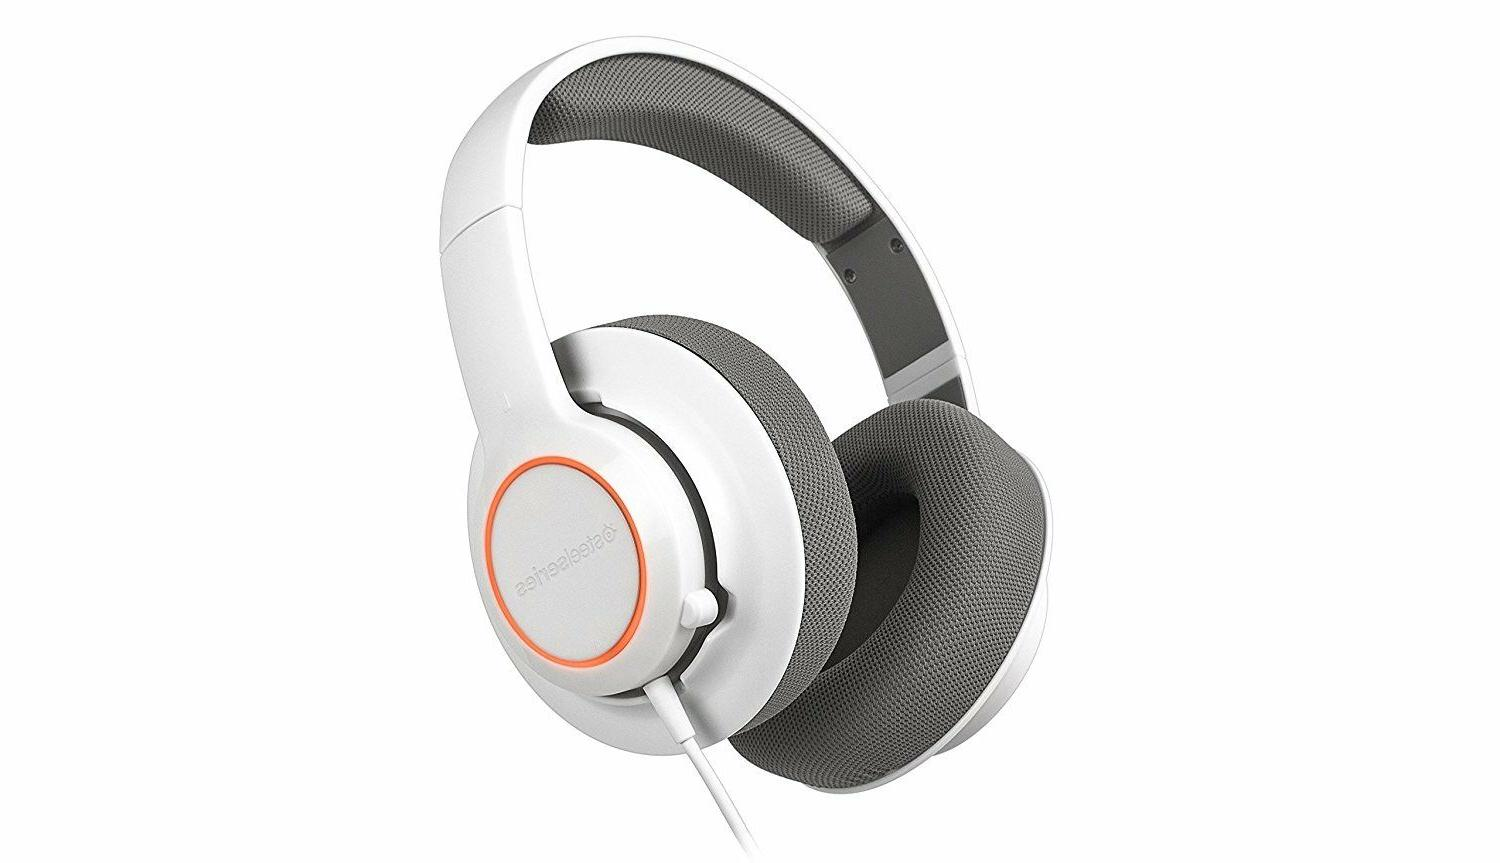 SteelSeries White Windows PC Headset New